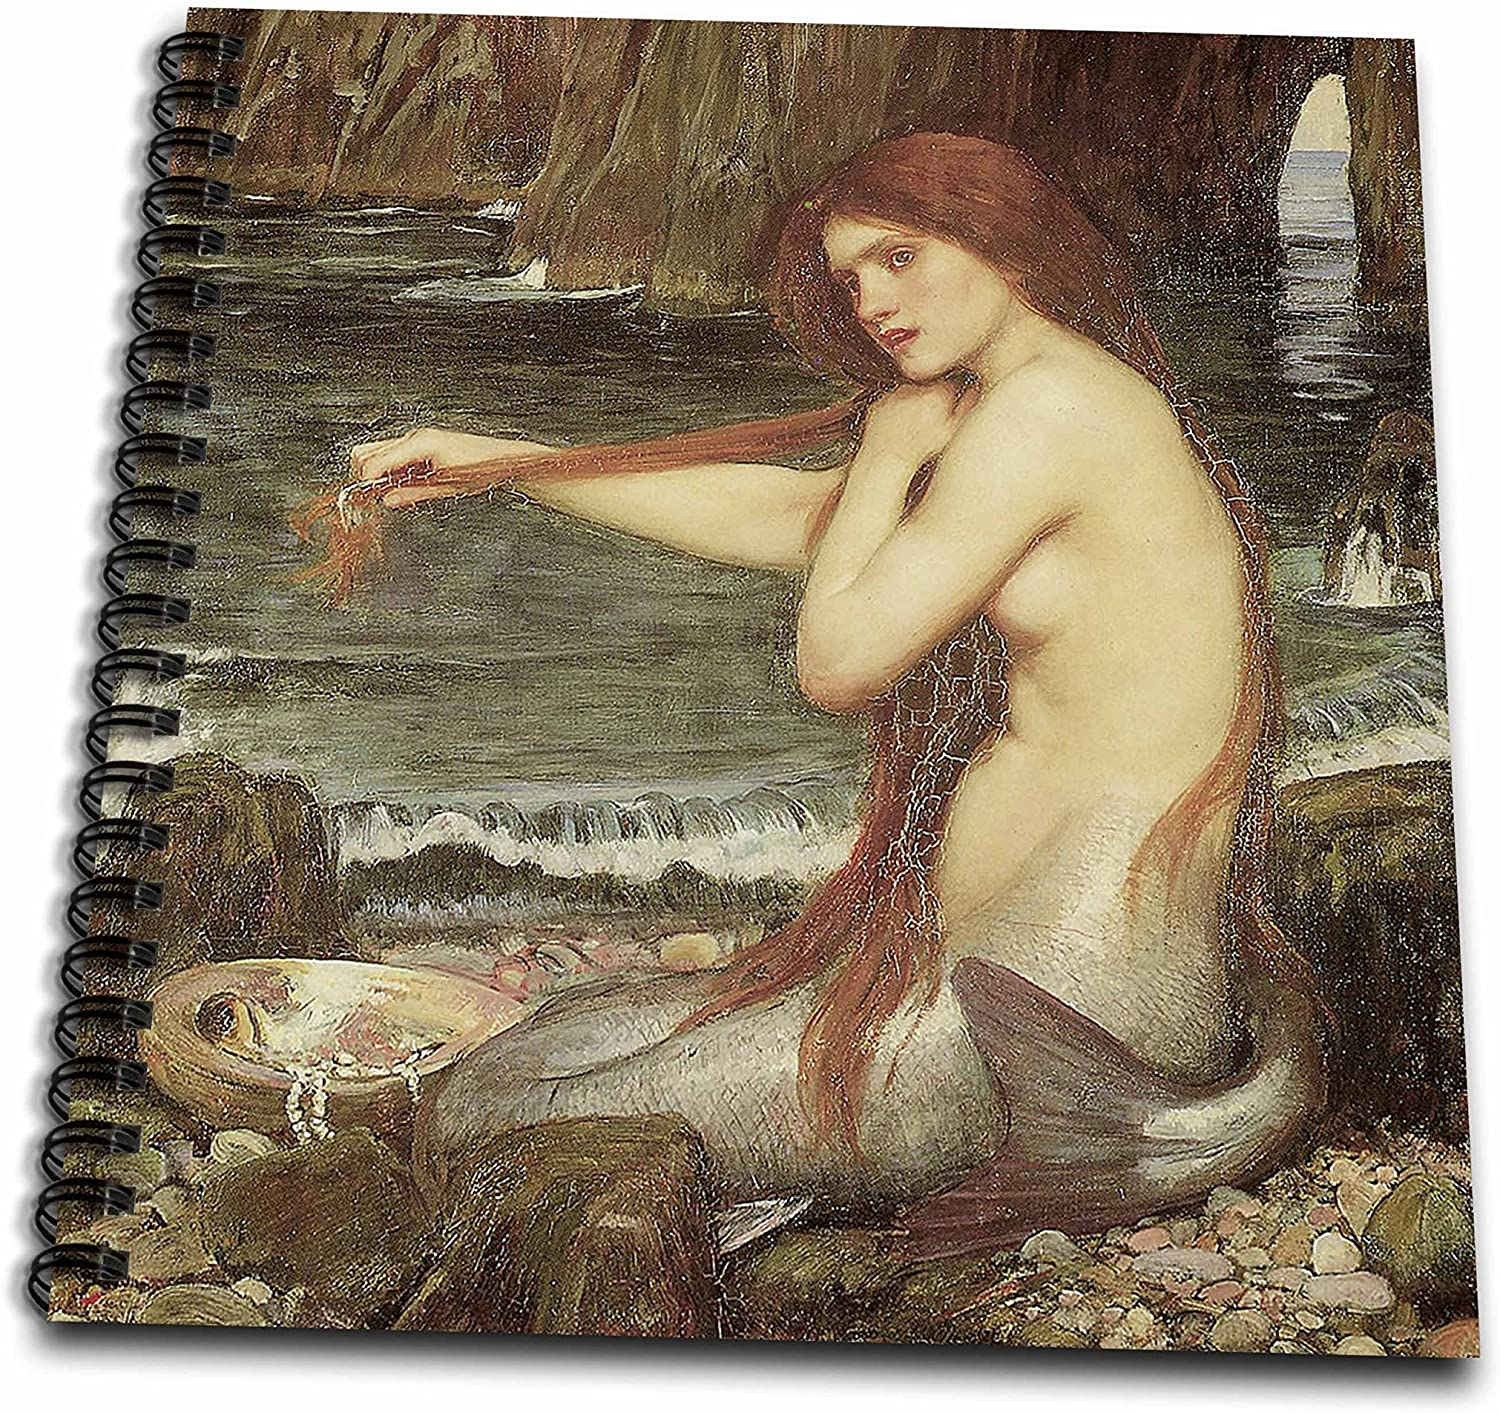 3dRose db_127294_1 A Mermaid by John William Waterhouse Drawing Book, 8 by 8-Inch